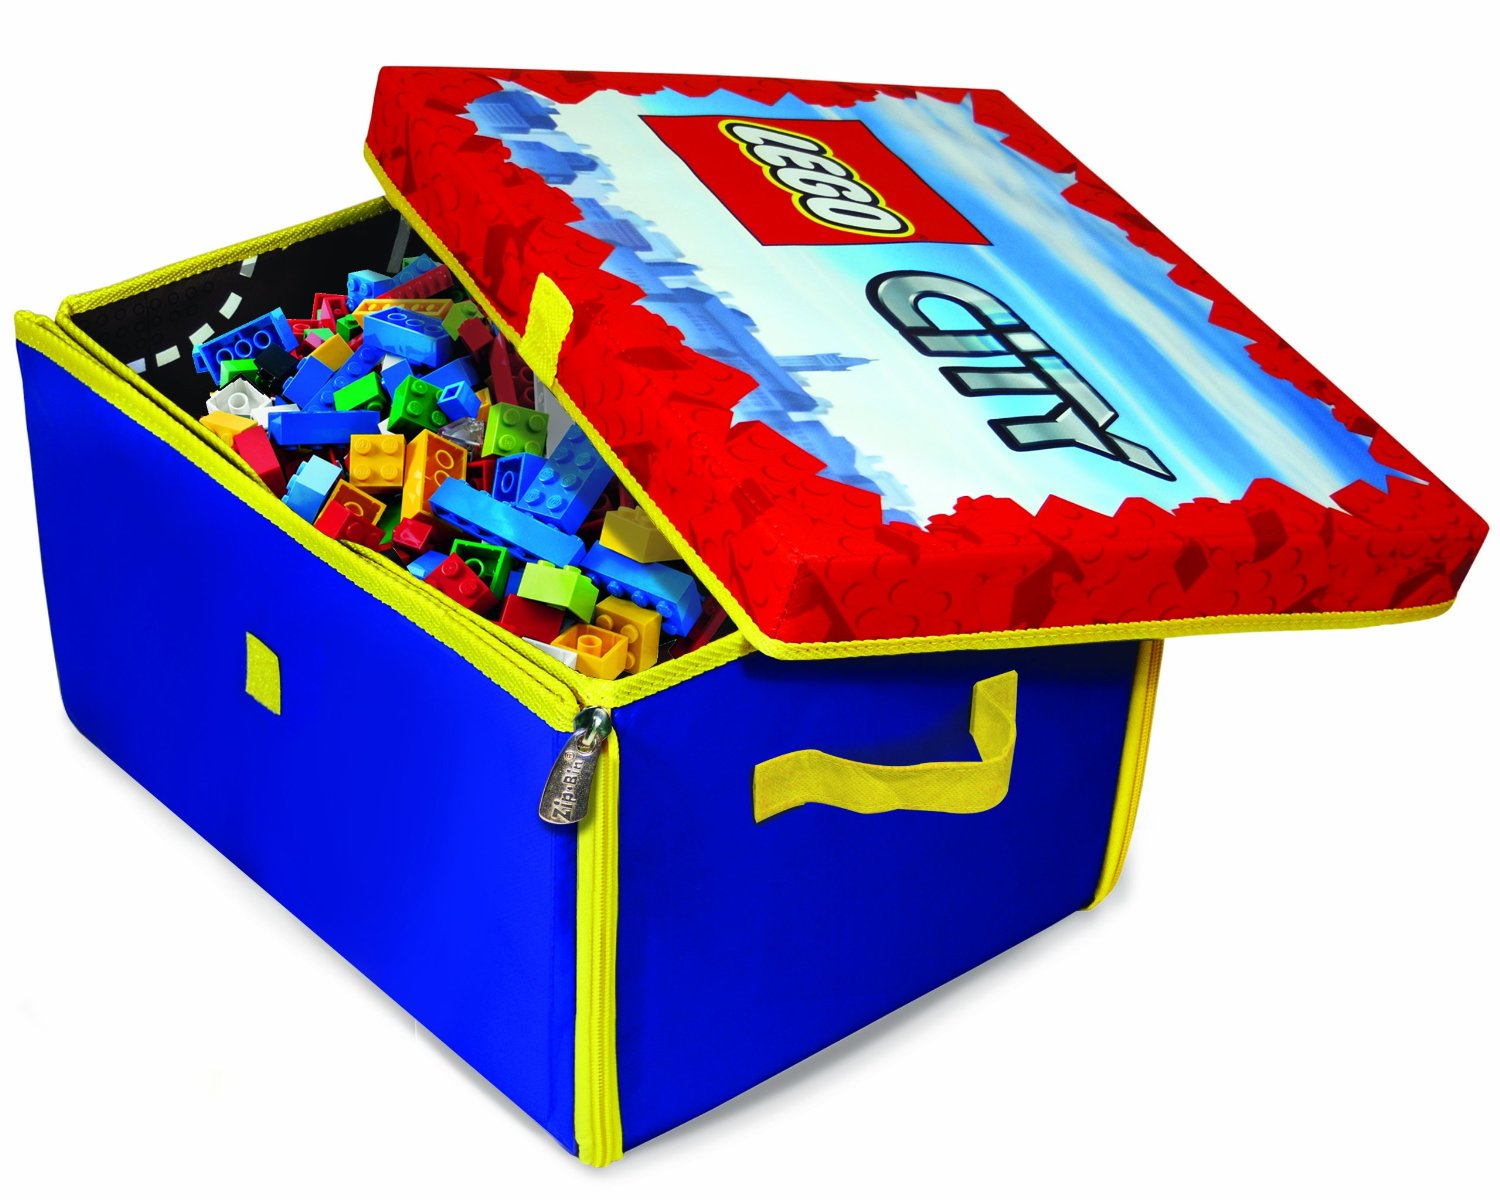 Beau Amazon Has These Great Neat Oh! LEGO Storage Bins On Sale Right Now For  Only $9.32! These Are Regularly $23 So This Is A Great Deal!